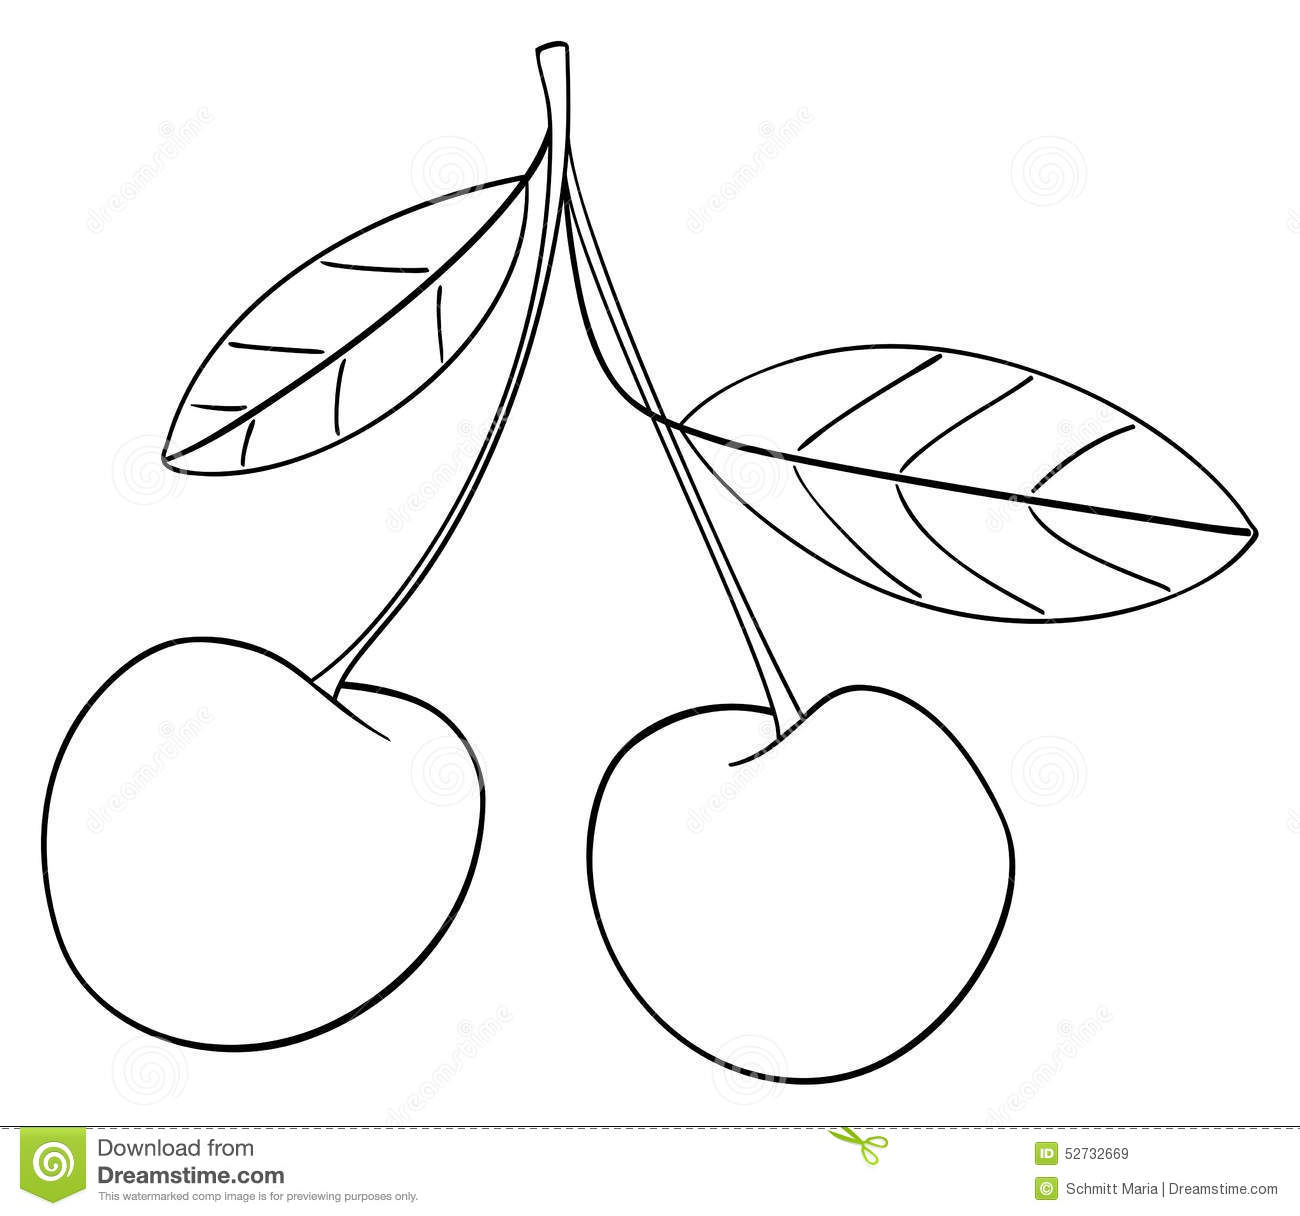 delightful garden  two cherries connected together with a